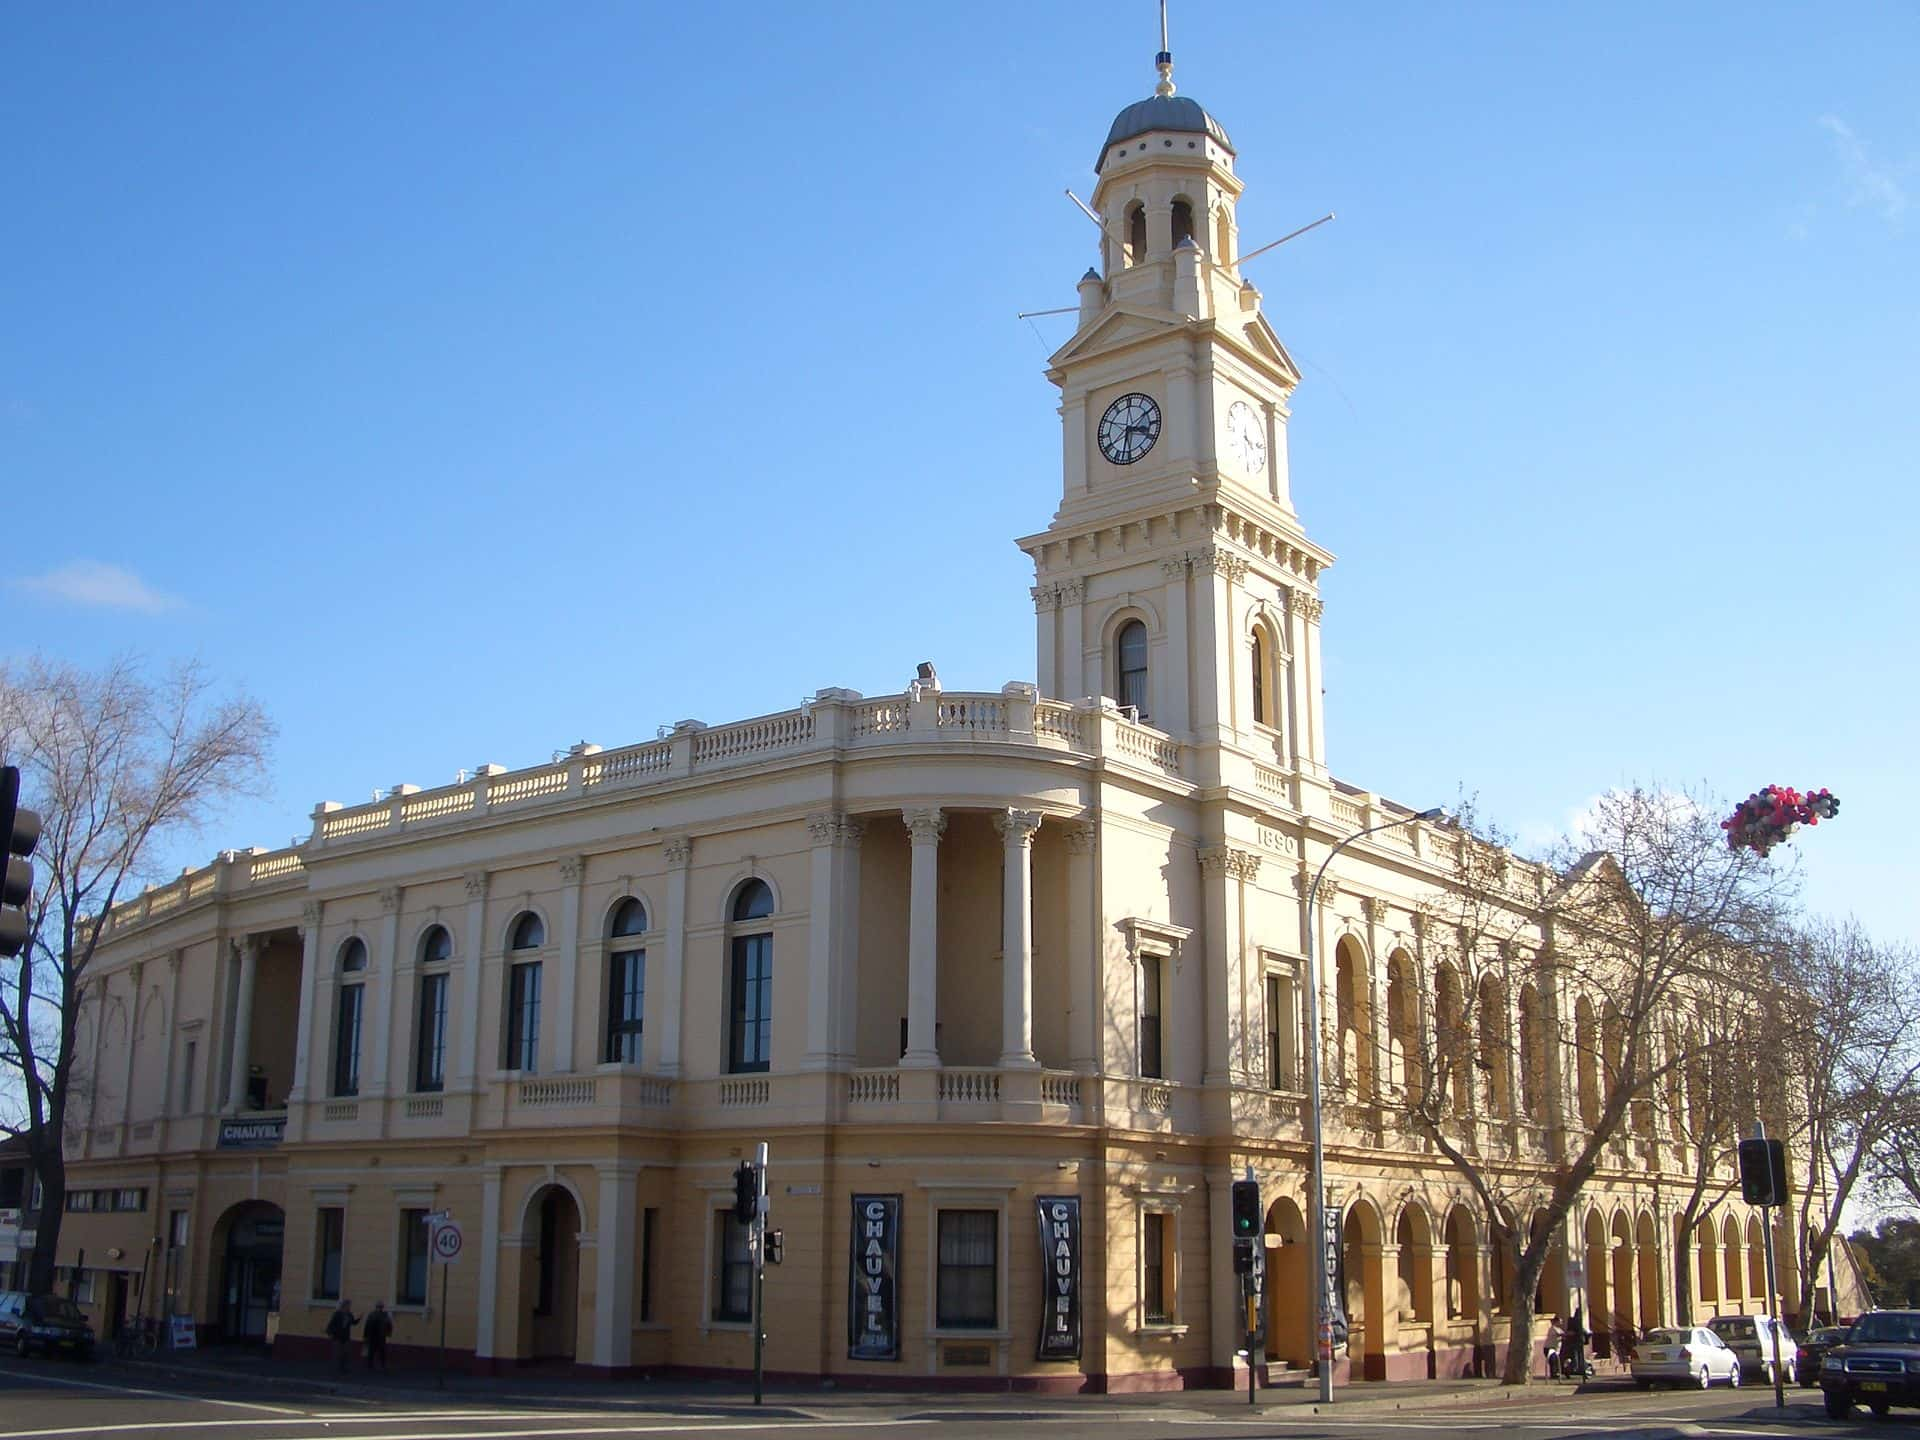 Town Hall, Oxford Street, Paddington, Sydney